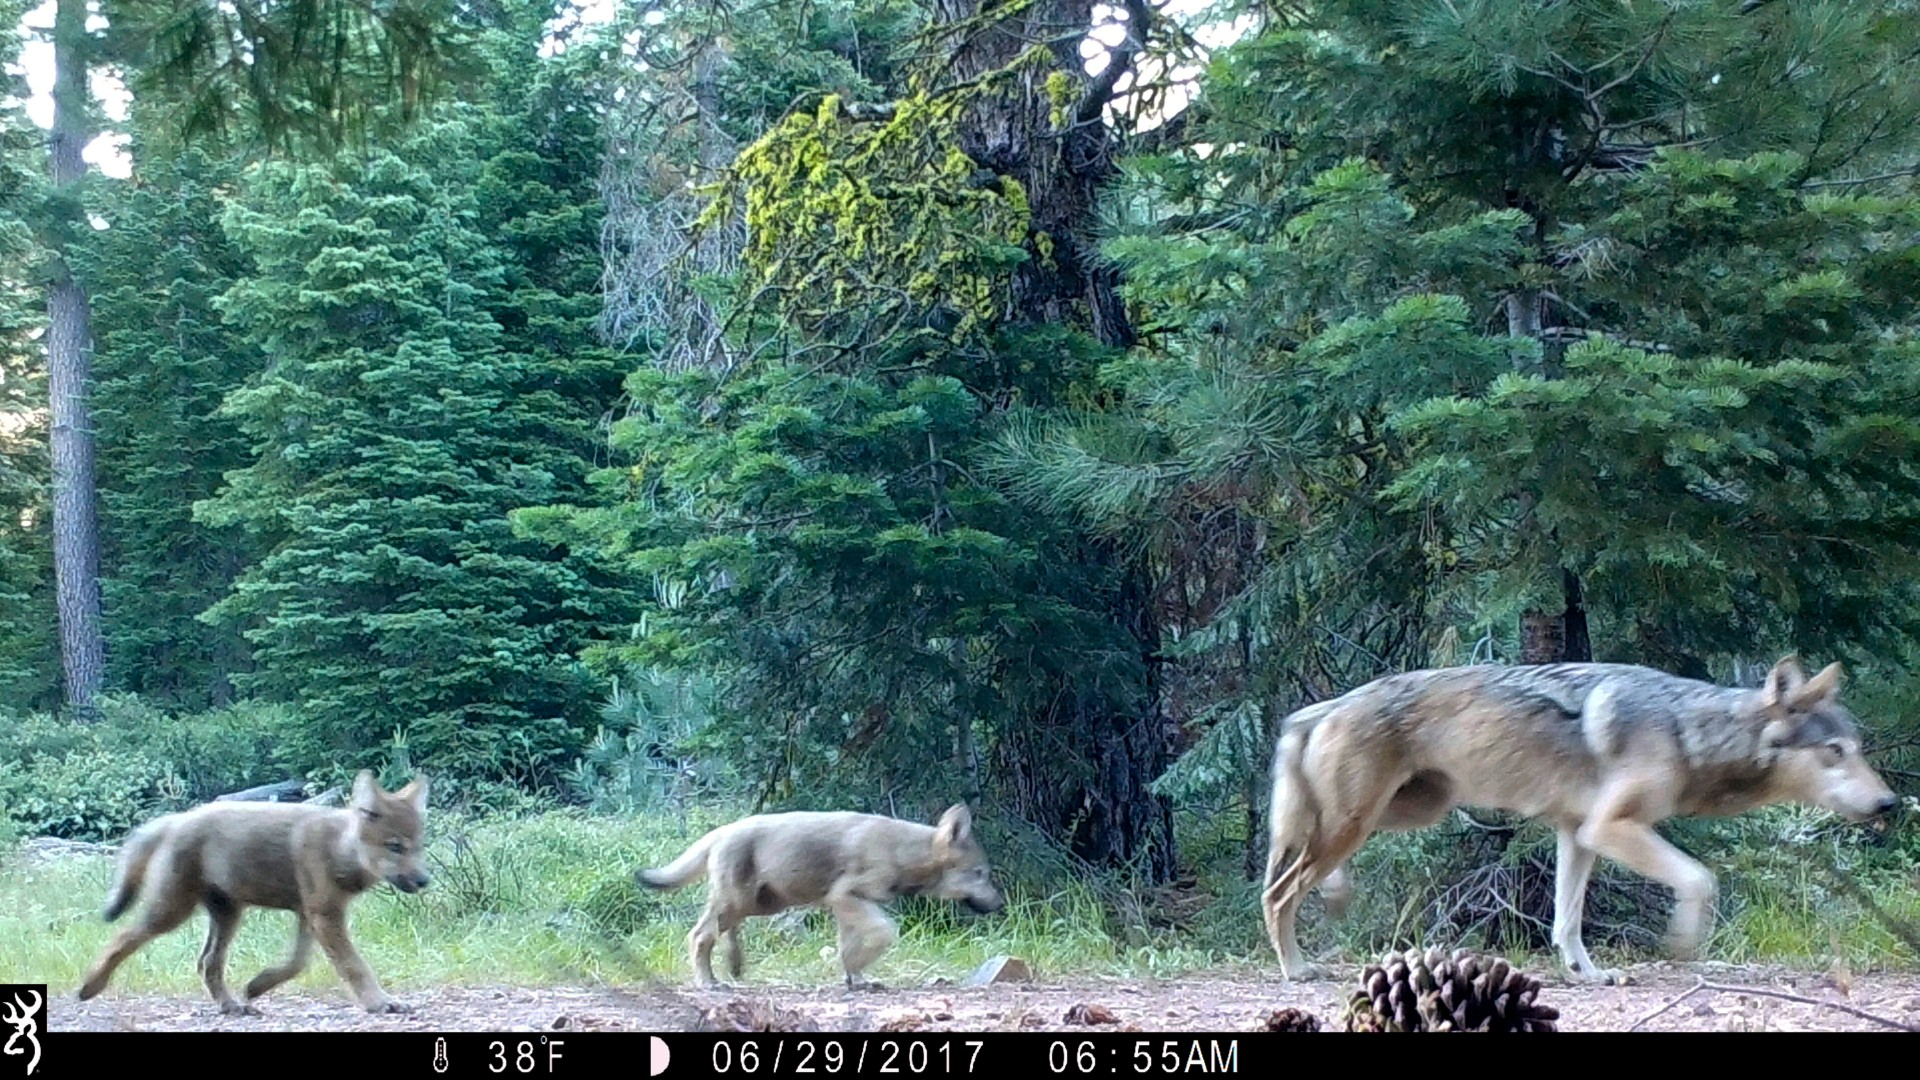 This June 29, 2017, file remote camera image provided by the U.S. Forest Service shows a female gray wolf and two of the three pups born in 2017 in the wilds of Lassen National Forest in Northern California. The Trump administration plans to lift endangered species protections for gray wolves across most of the nation by the end of 2020, the director of the U.S. Fish and Wildlife Service said Monday, Aug. 31, 2020. (U.S. Forest Service via AP, File)